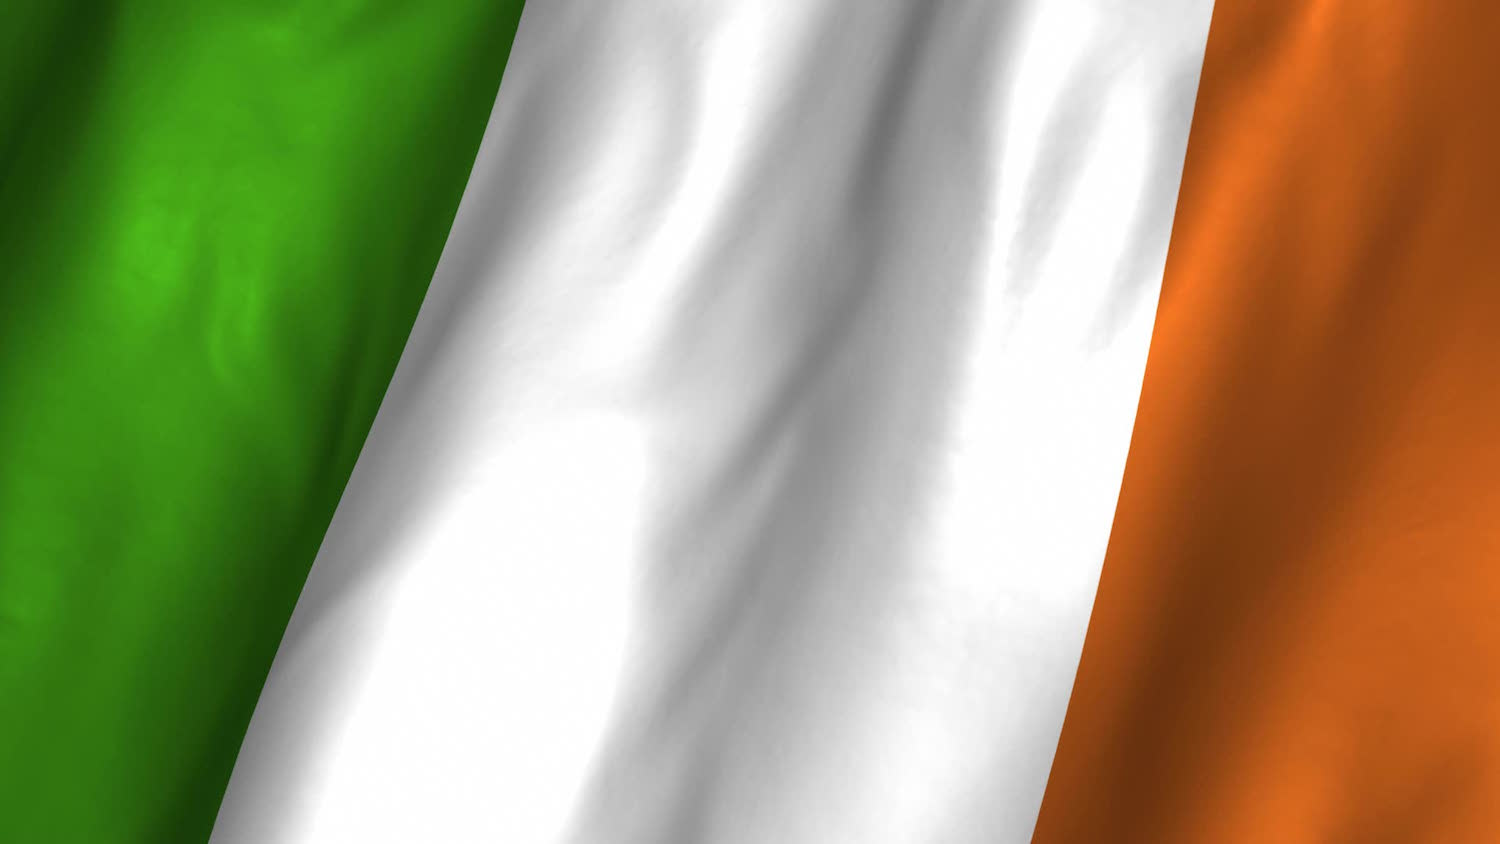 Ireland officially sided with Apple